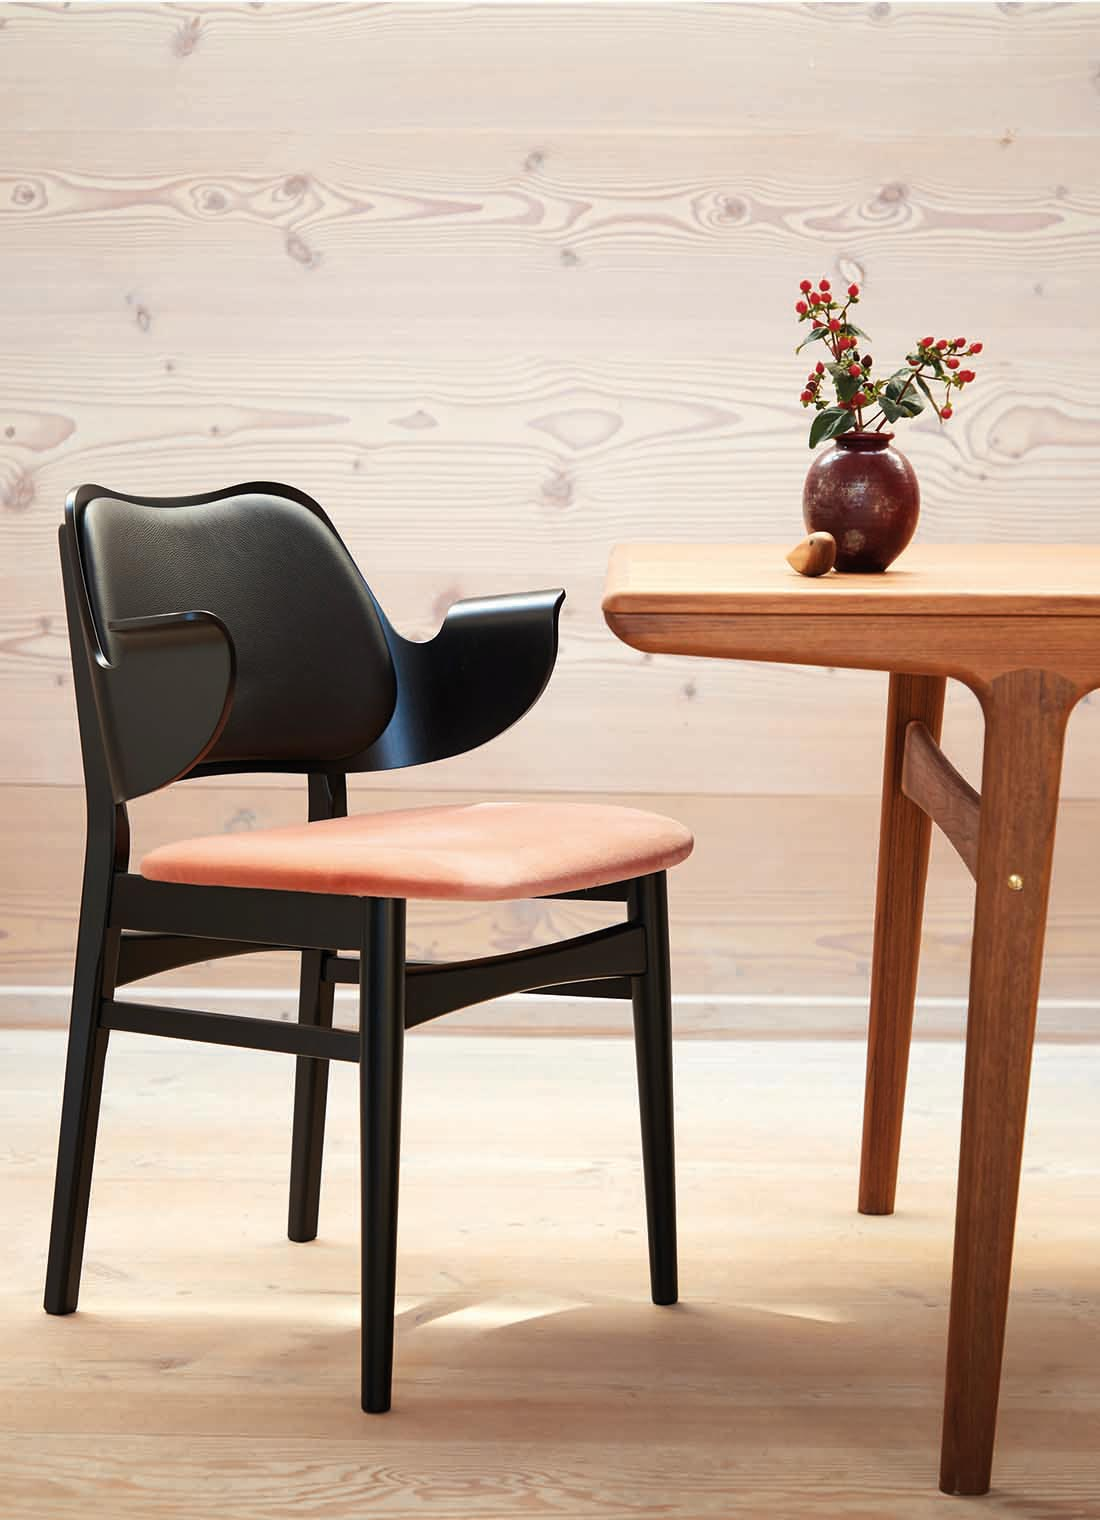 Gesture dining chair, black